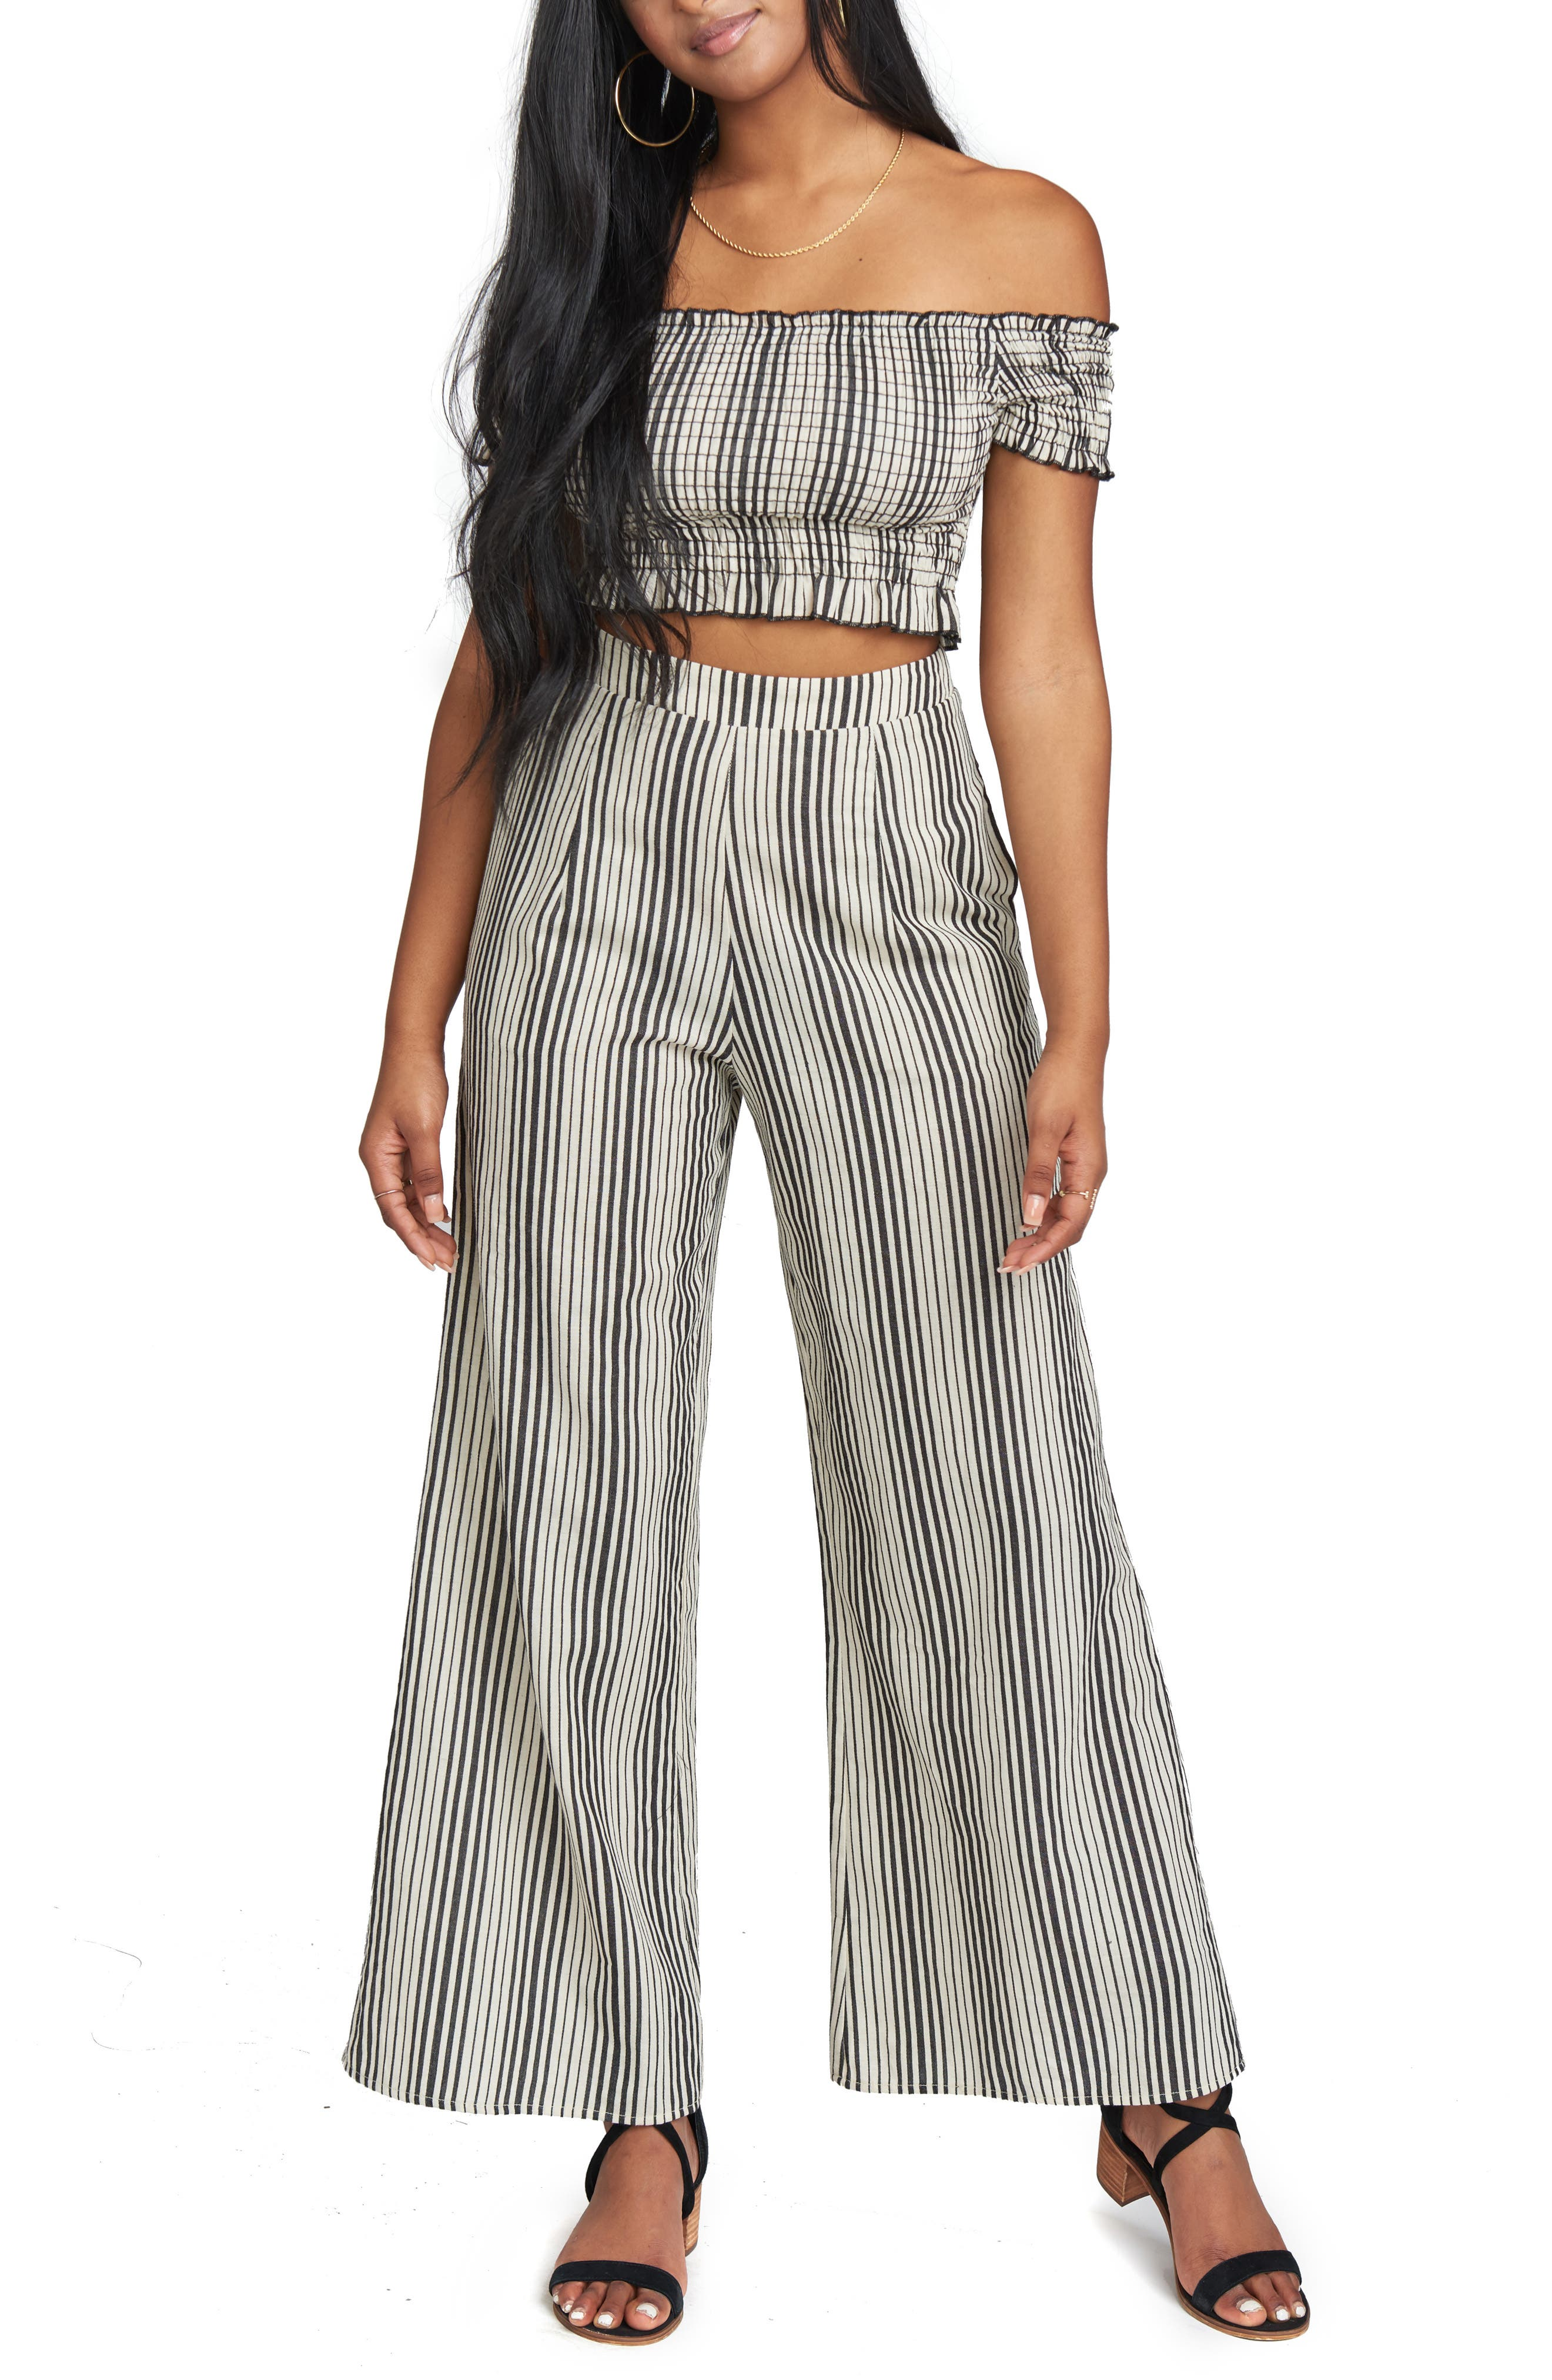 Stripe Strapless Crop Top,                             Main thumbnail 1, color,                             900